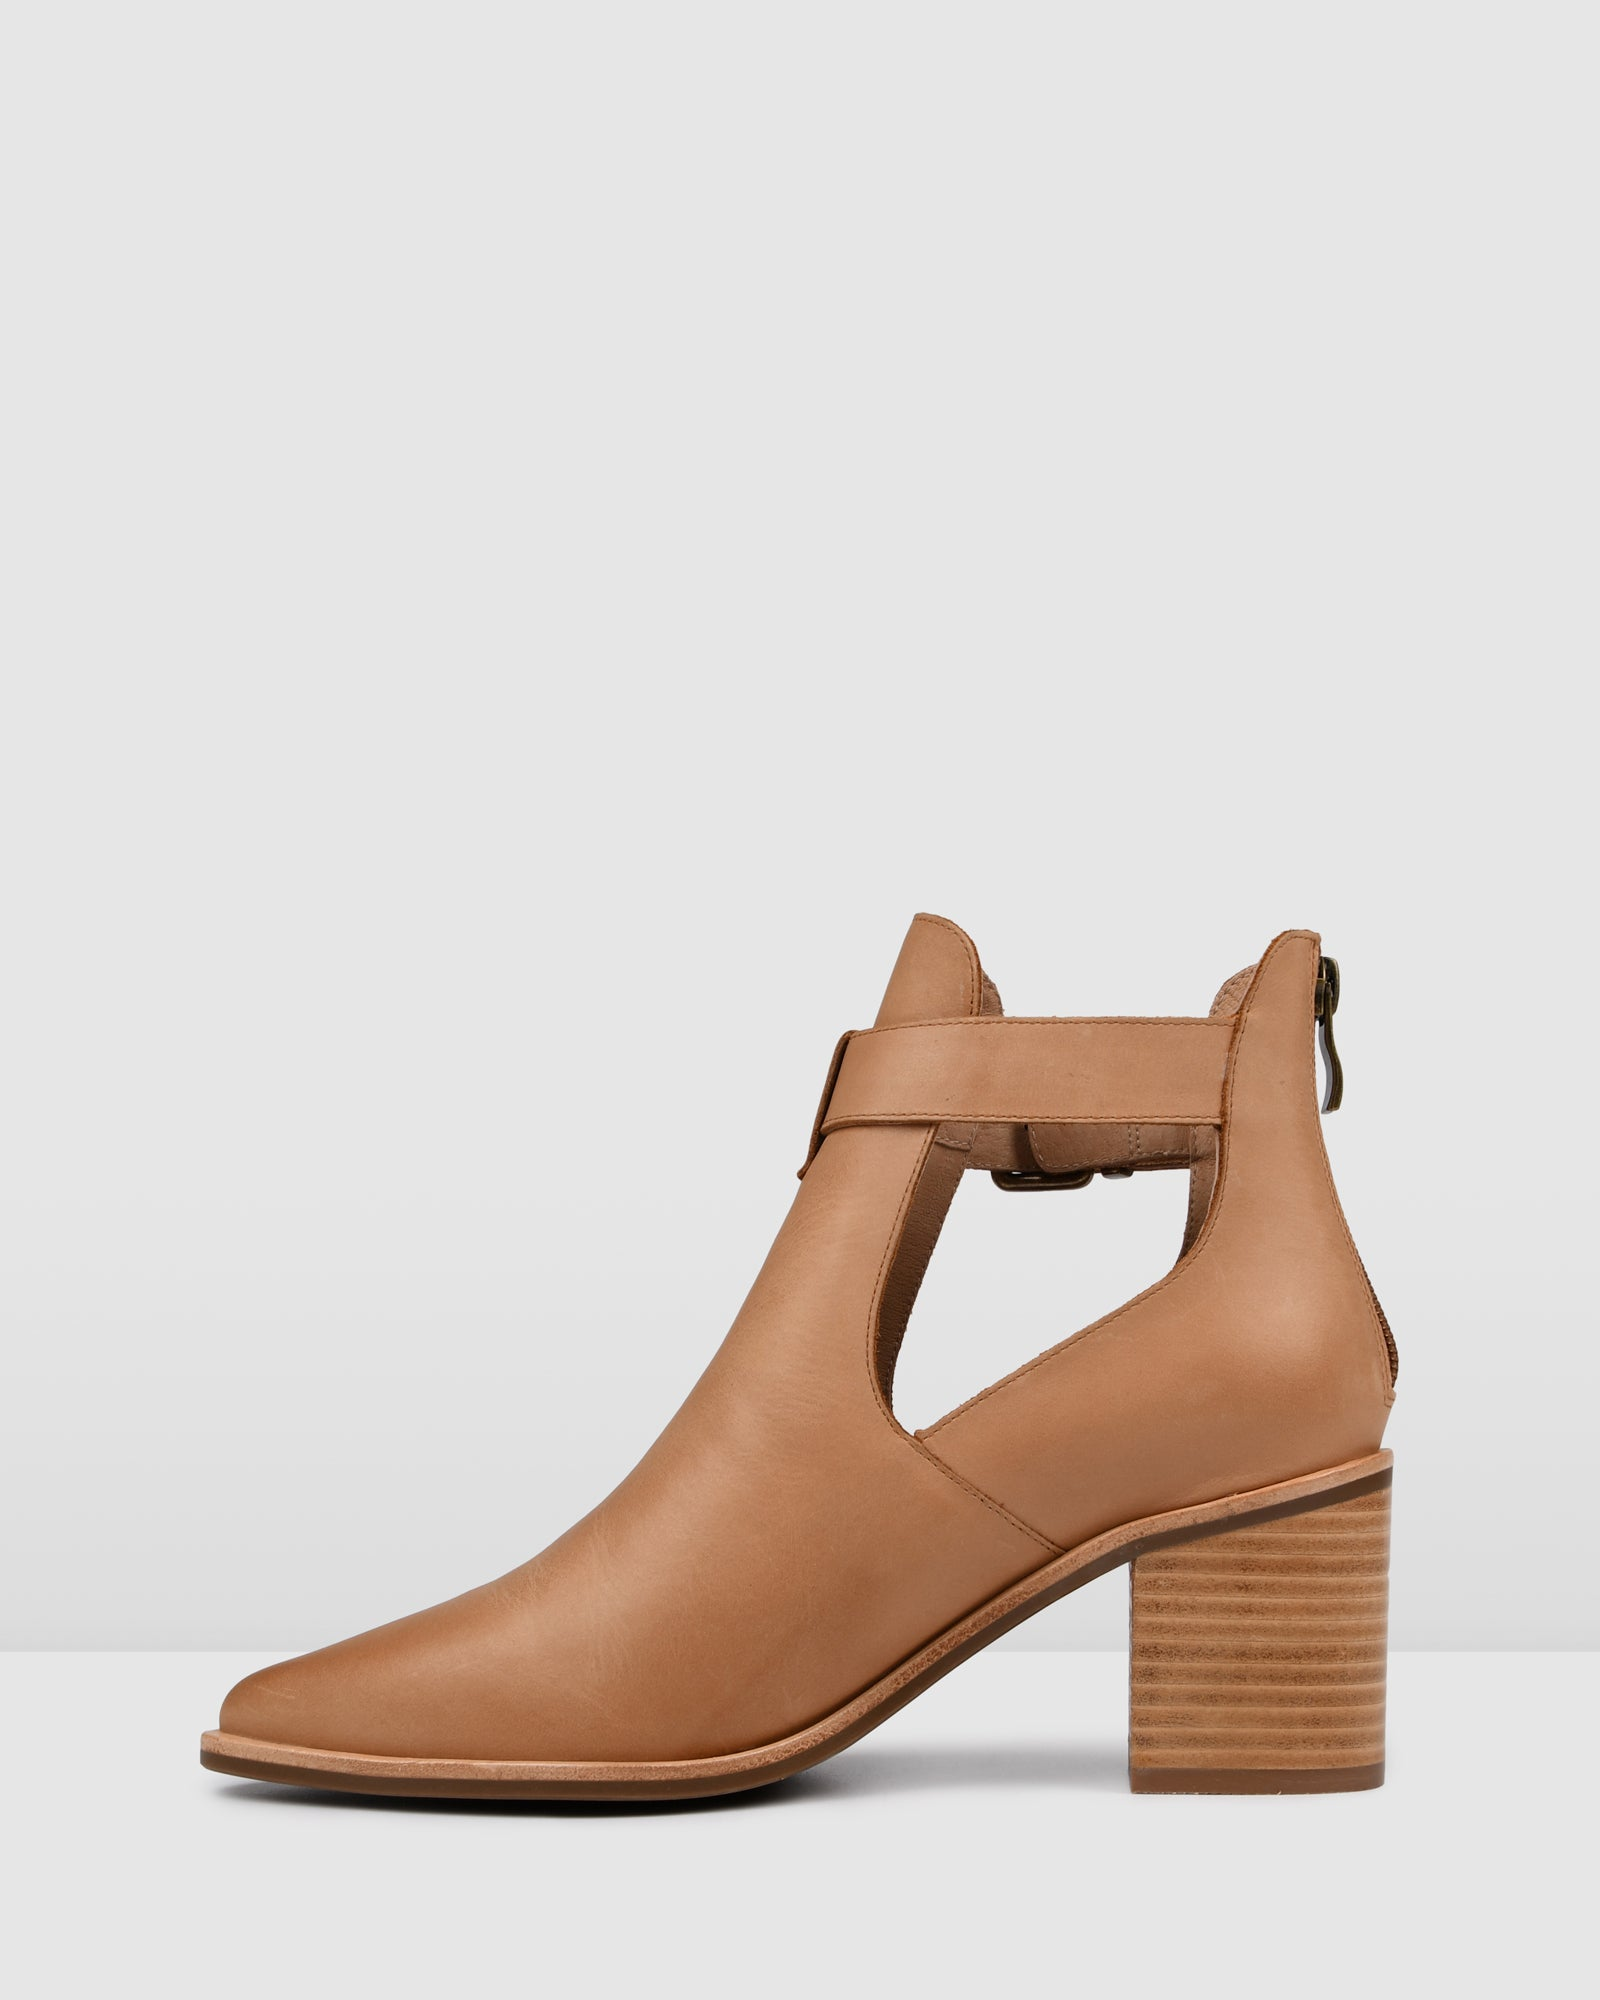 ABBY MID ANKLE BOOTS CHOCOLATE LEATHER